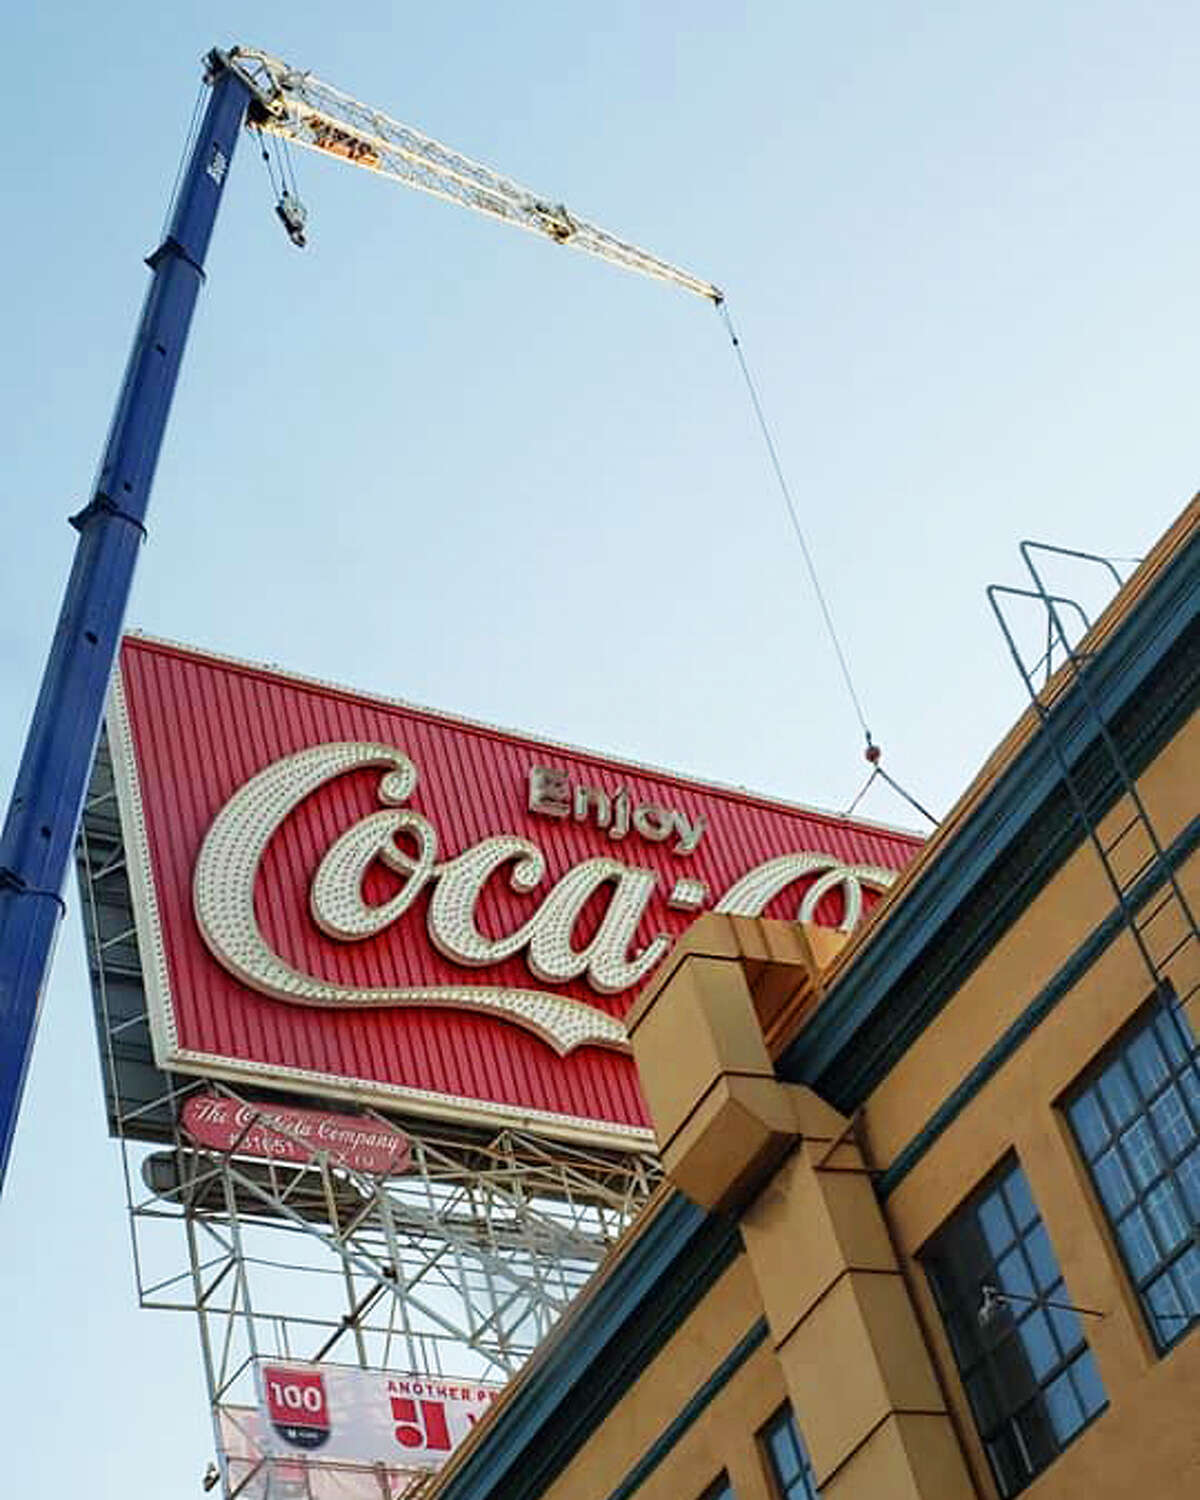 A crew takes down San Francisco's iconic Coca-Cola billboard in a photo posted Oct. 28, 2020.